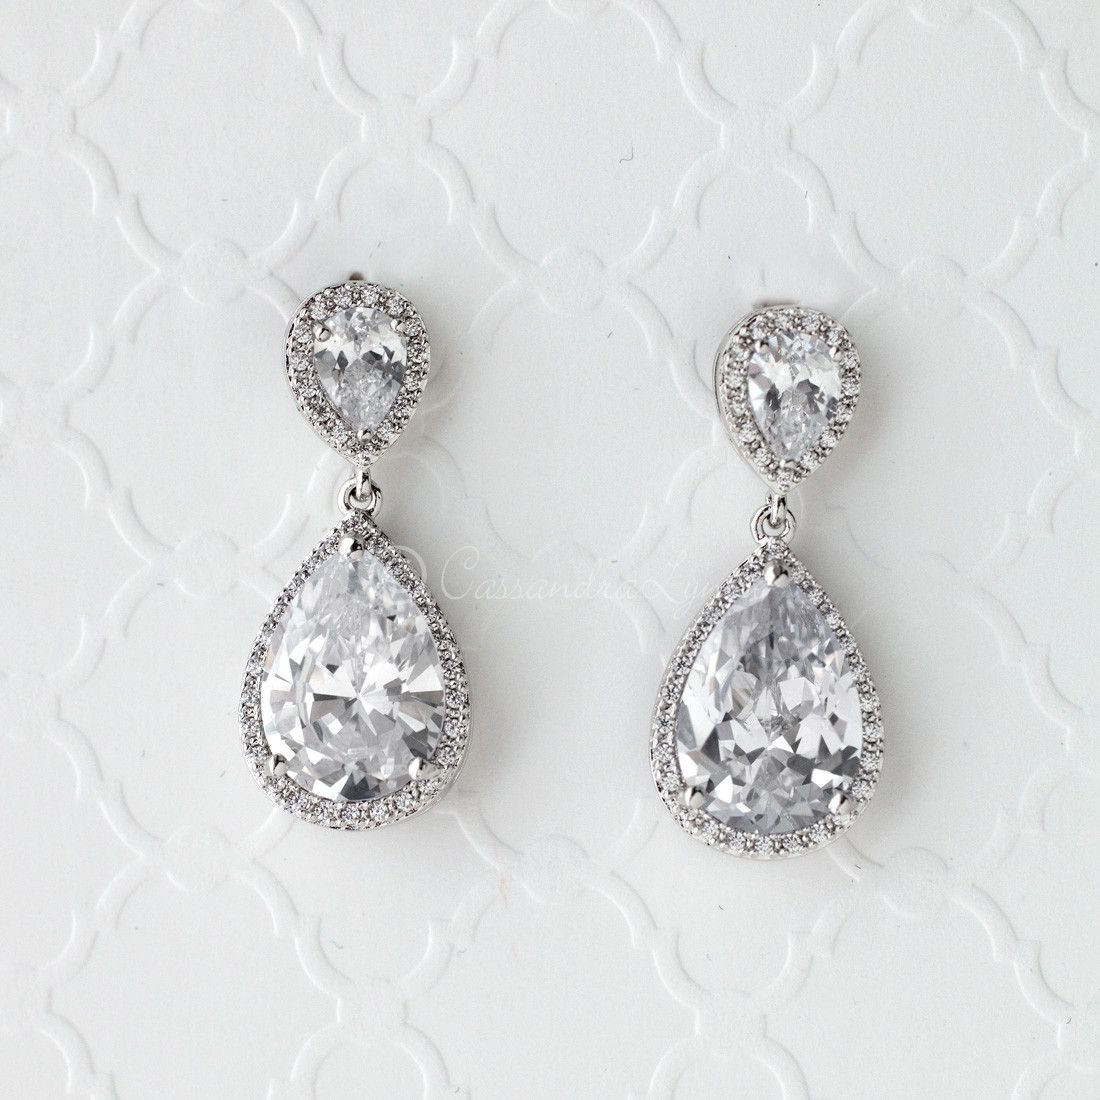 druzy party and gifts earrings white geodes collections bridal bride moonstone products fabulous